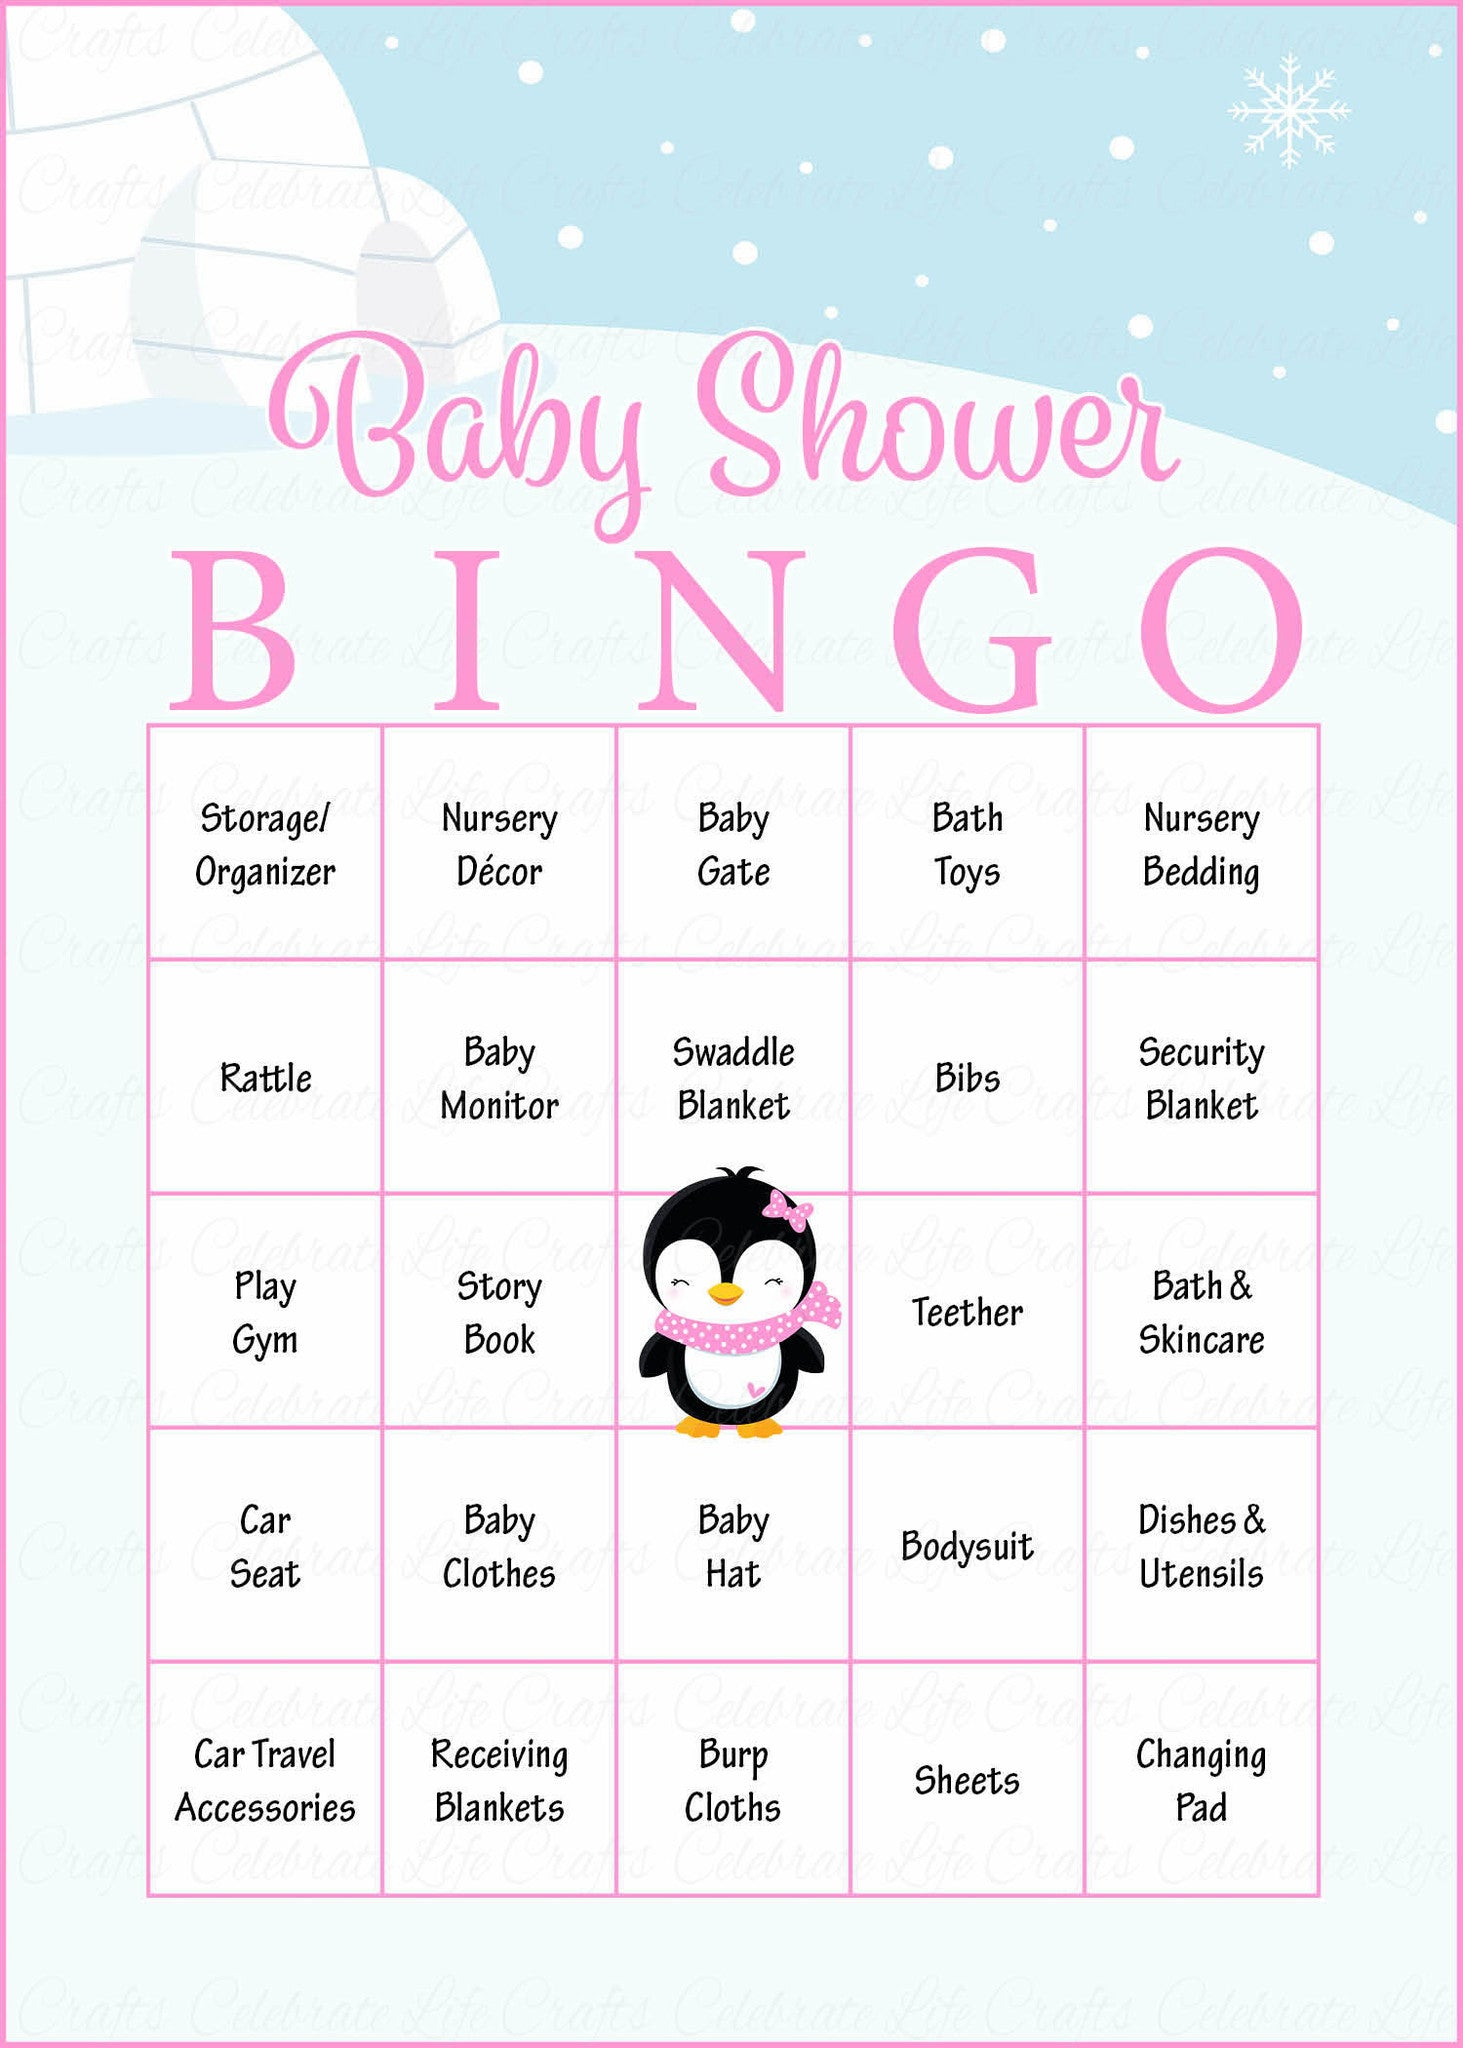 image relating to Winter Bingo Cards Free Printable identified as Wintertime Youngster Bingo Playing cards - Printable Obtain - Prefilled - Little one Shower Match for Female - Purple Penguin